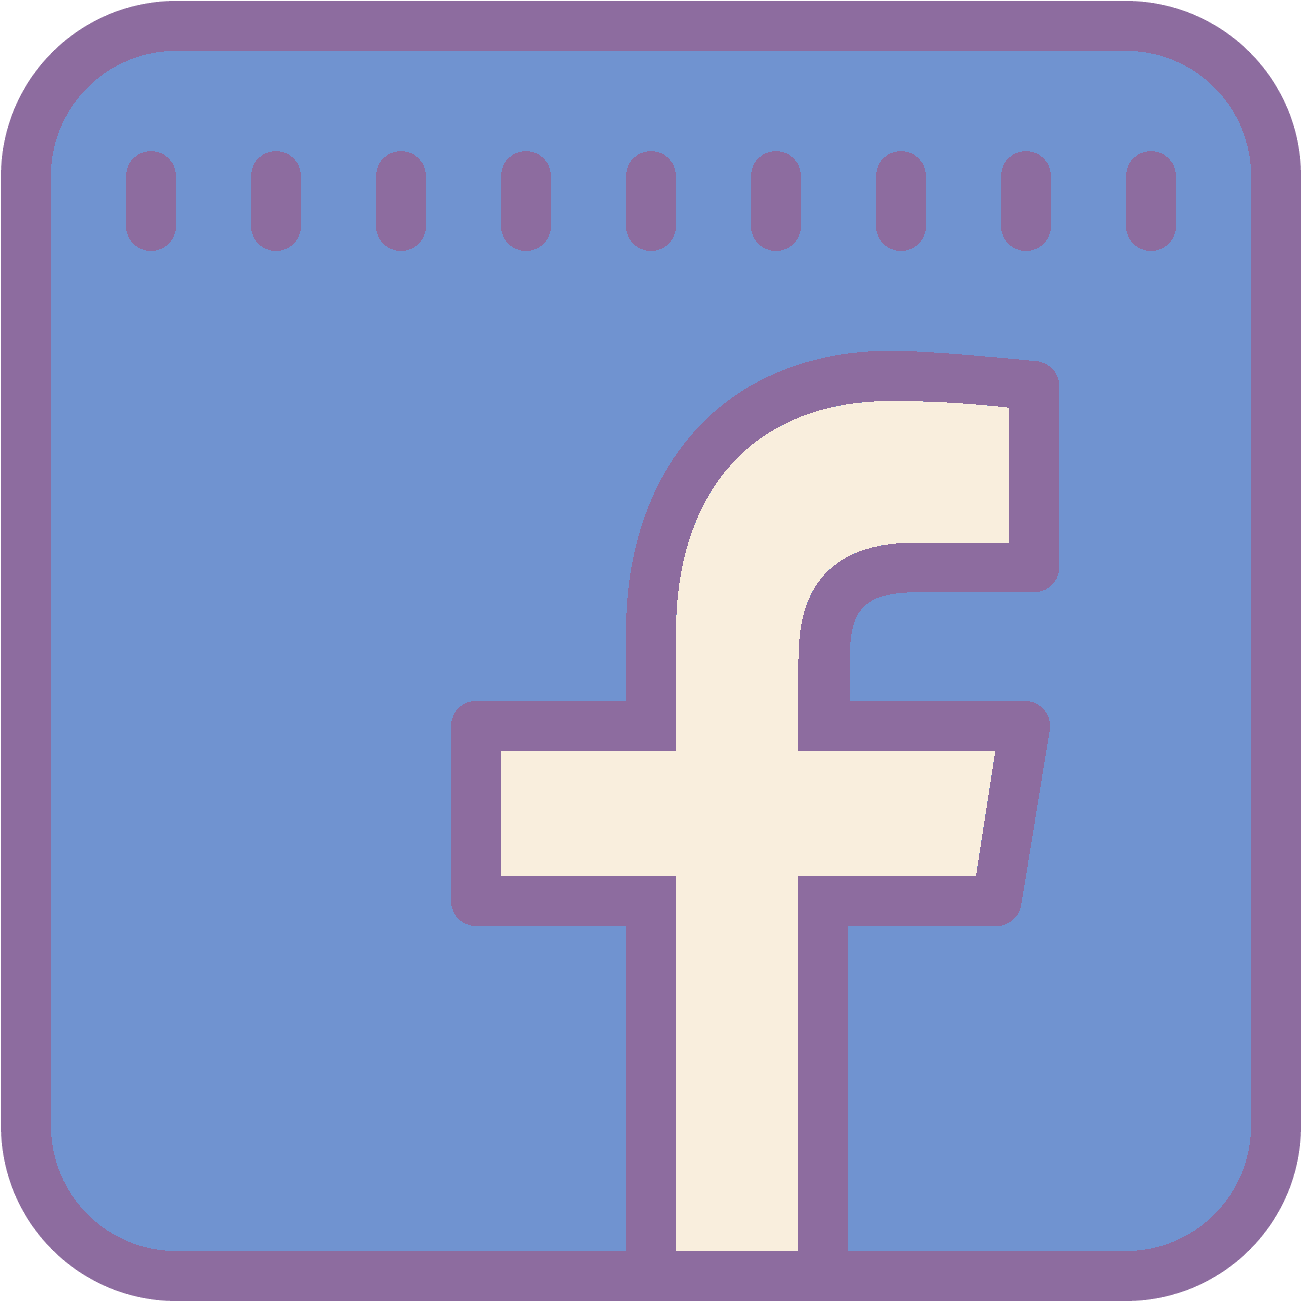 Facebook clipart svg. Icon free png and